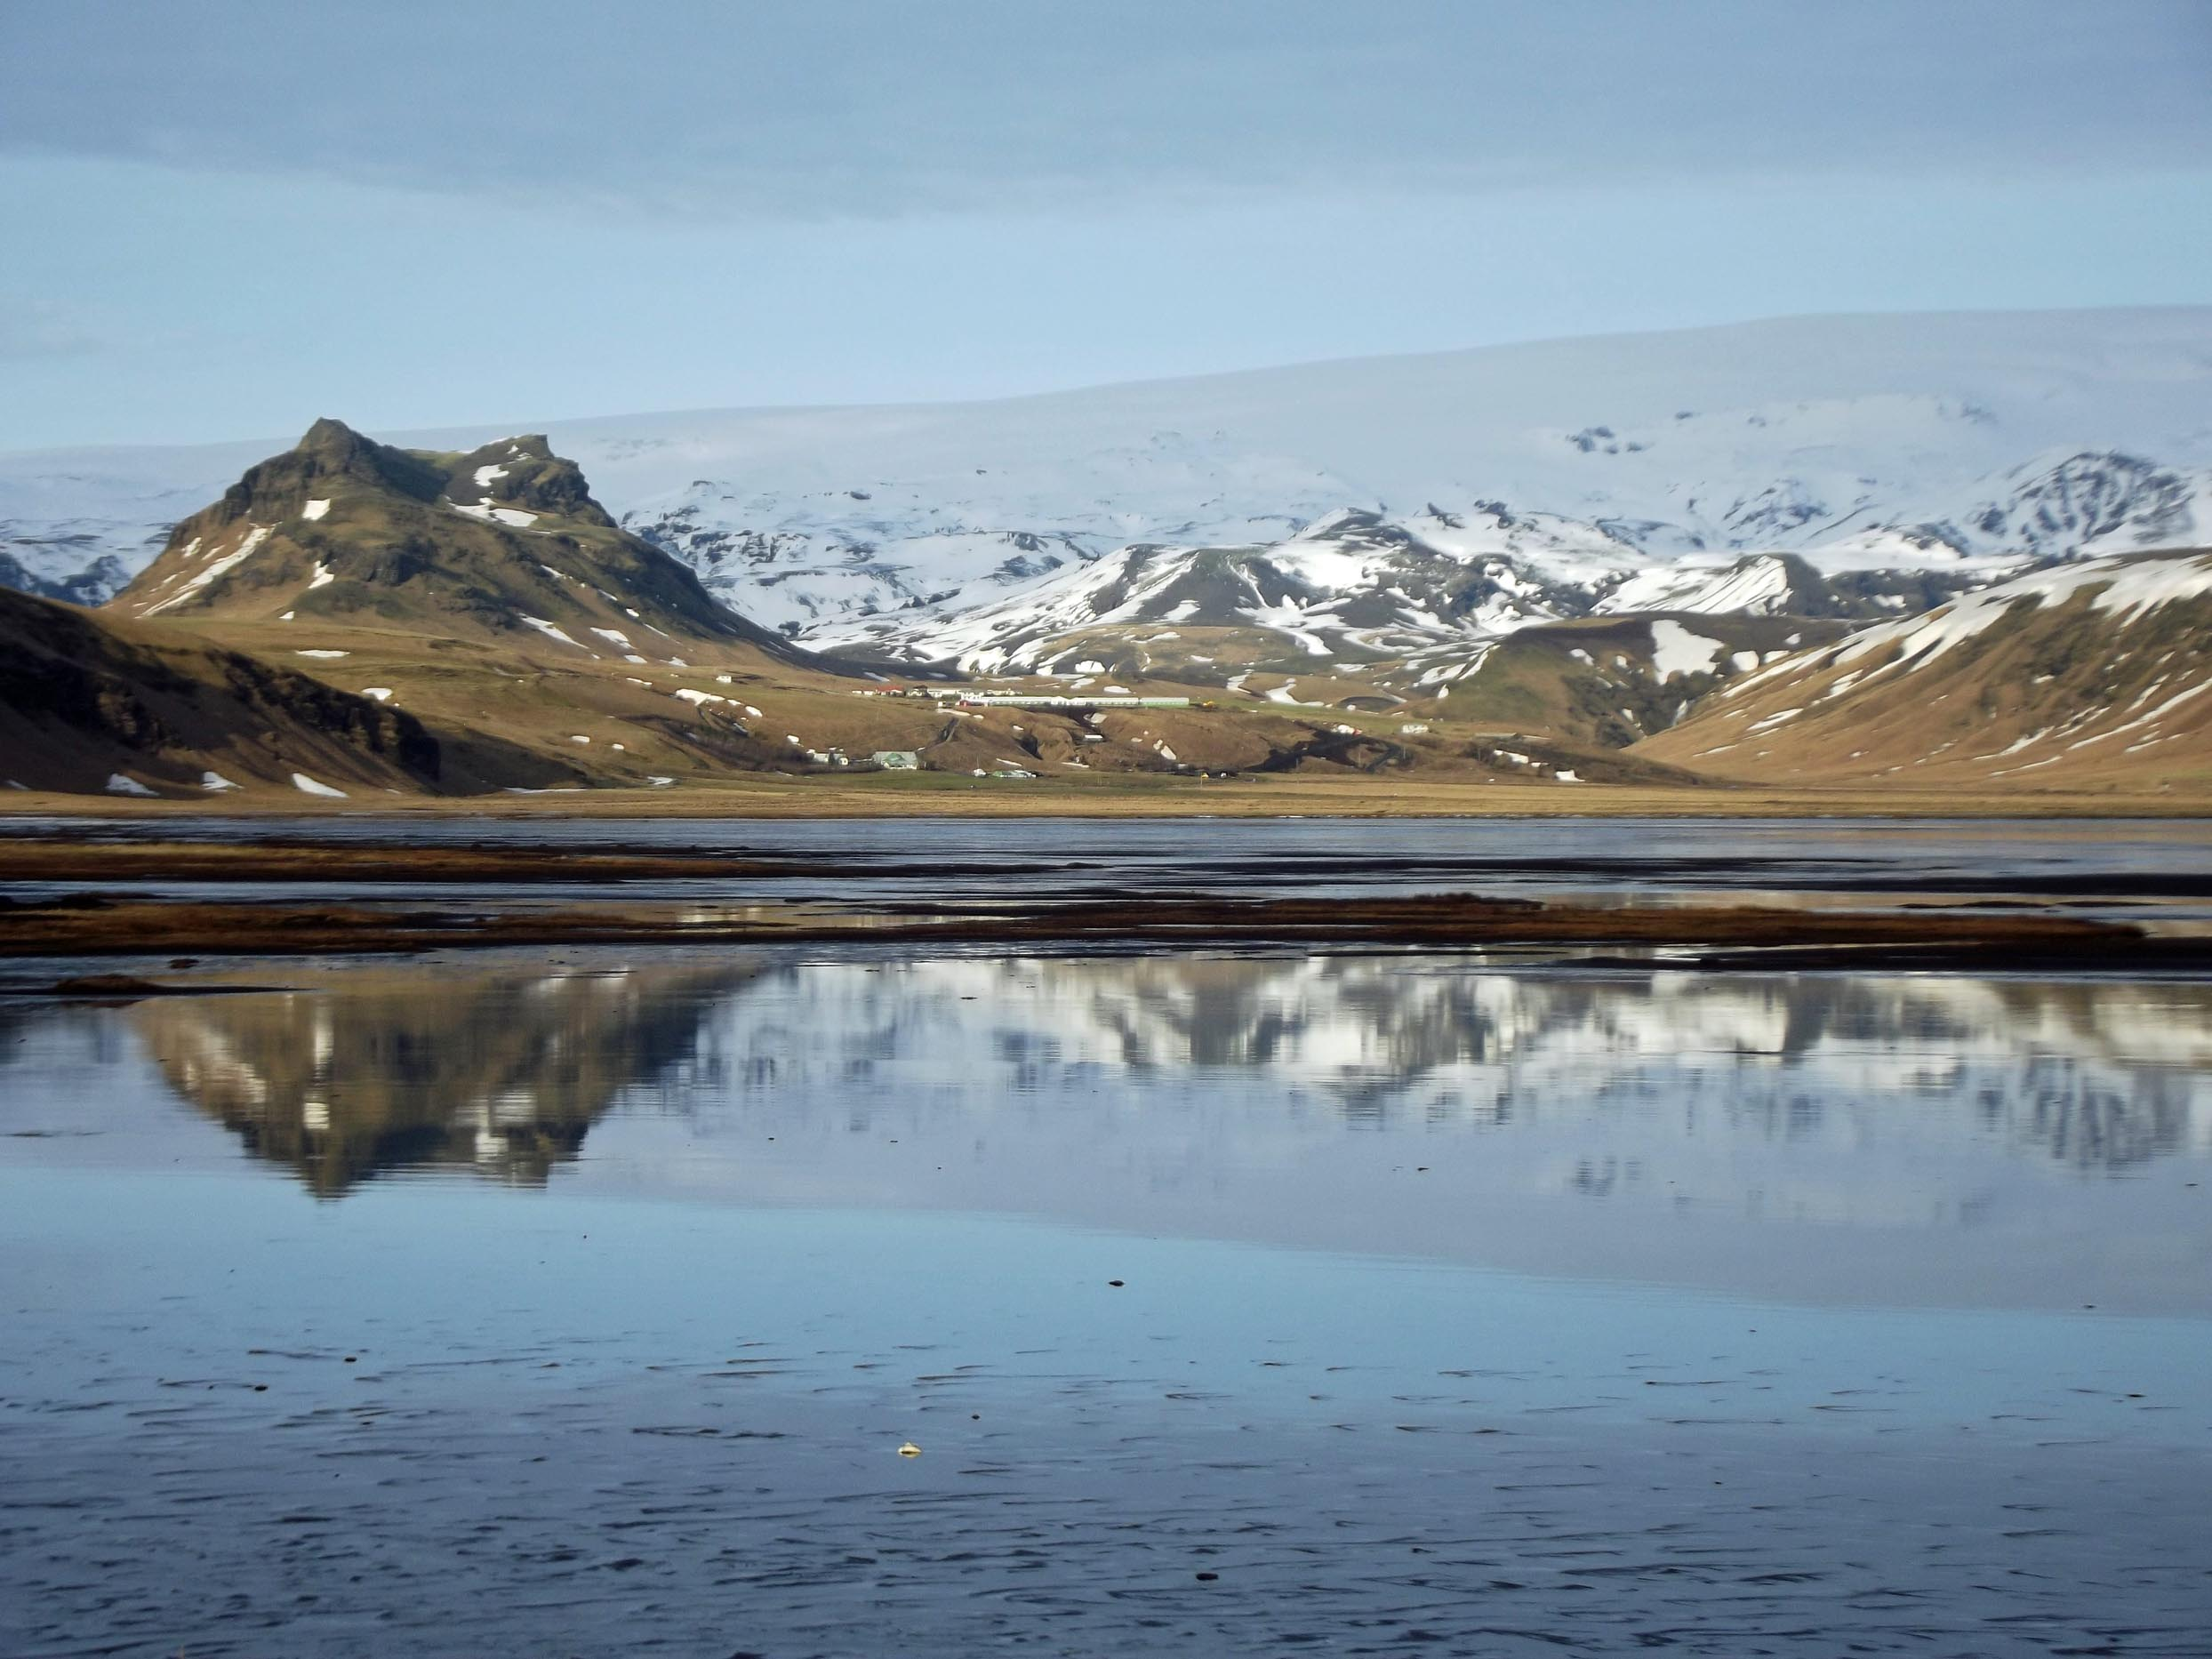 Snowy mountains reflected in still water